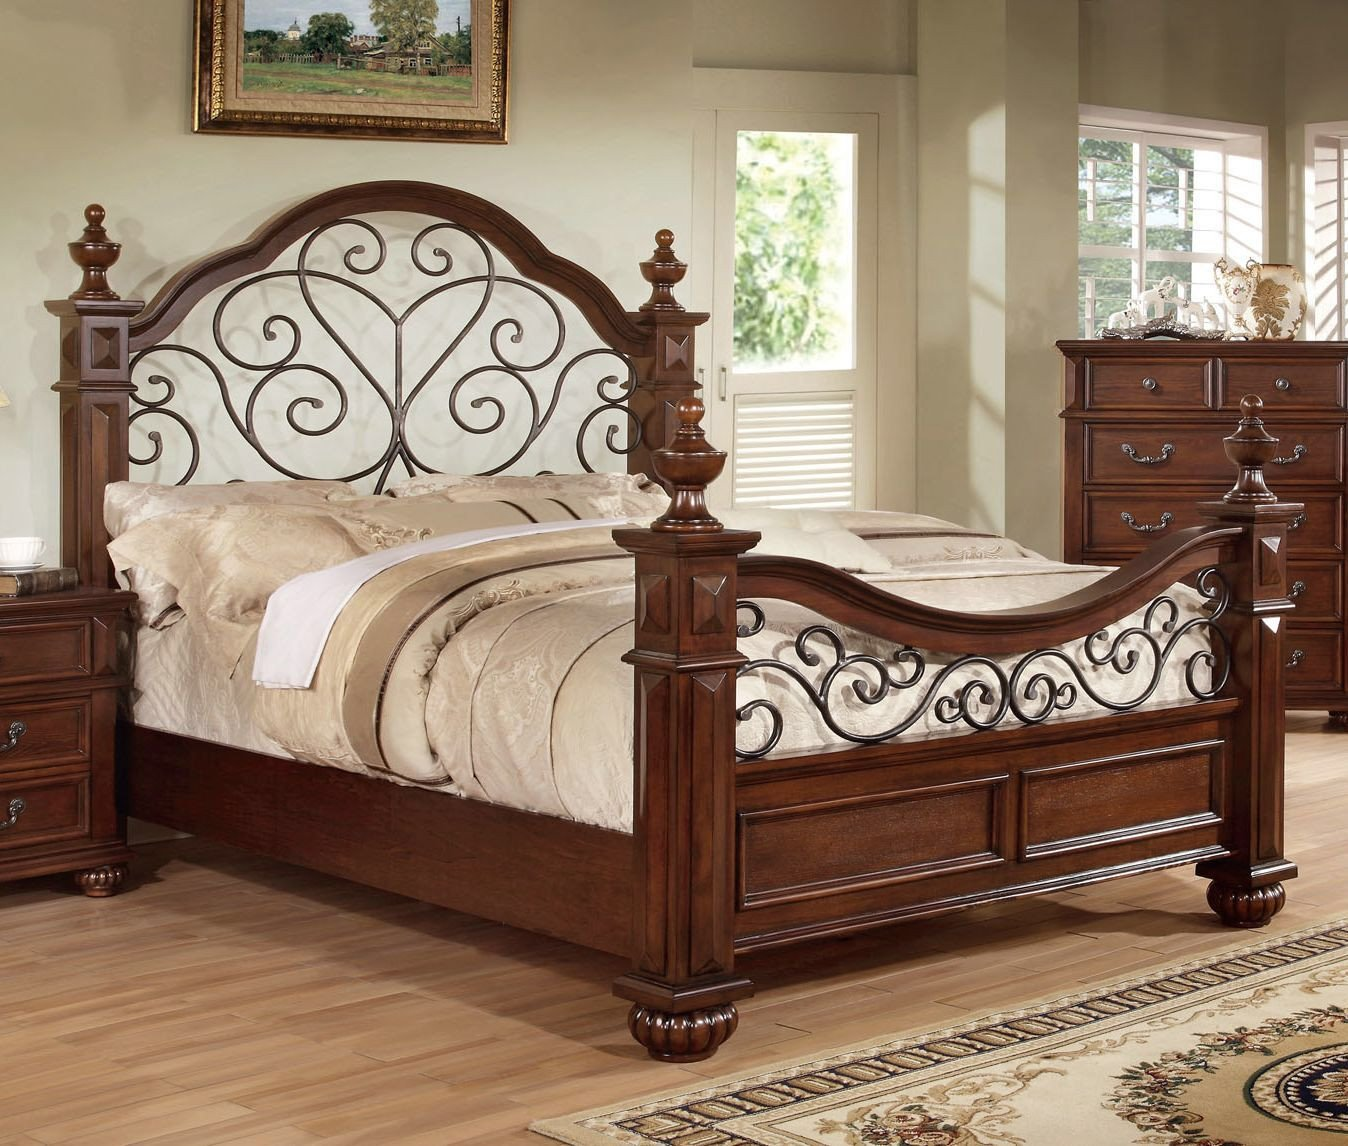 Wood Queen Bedroom Set Fresh Lorrenzia Platform Configurable Bedroom Set